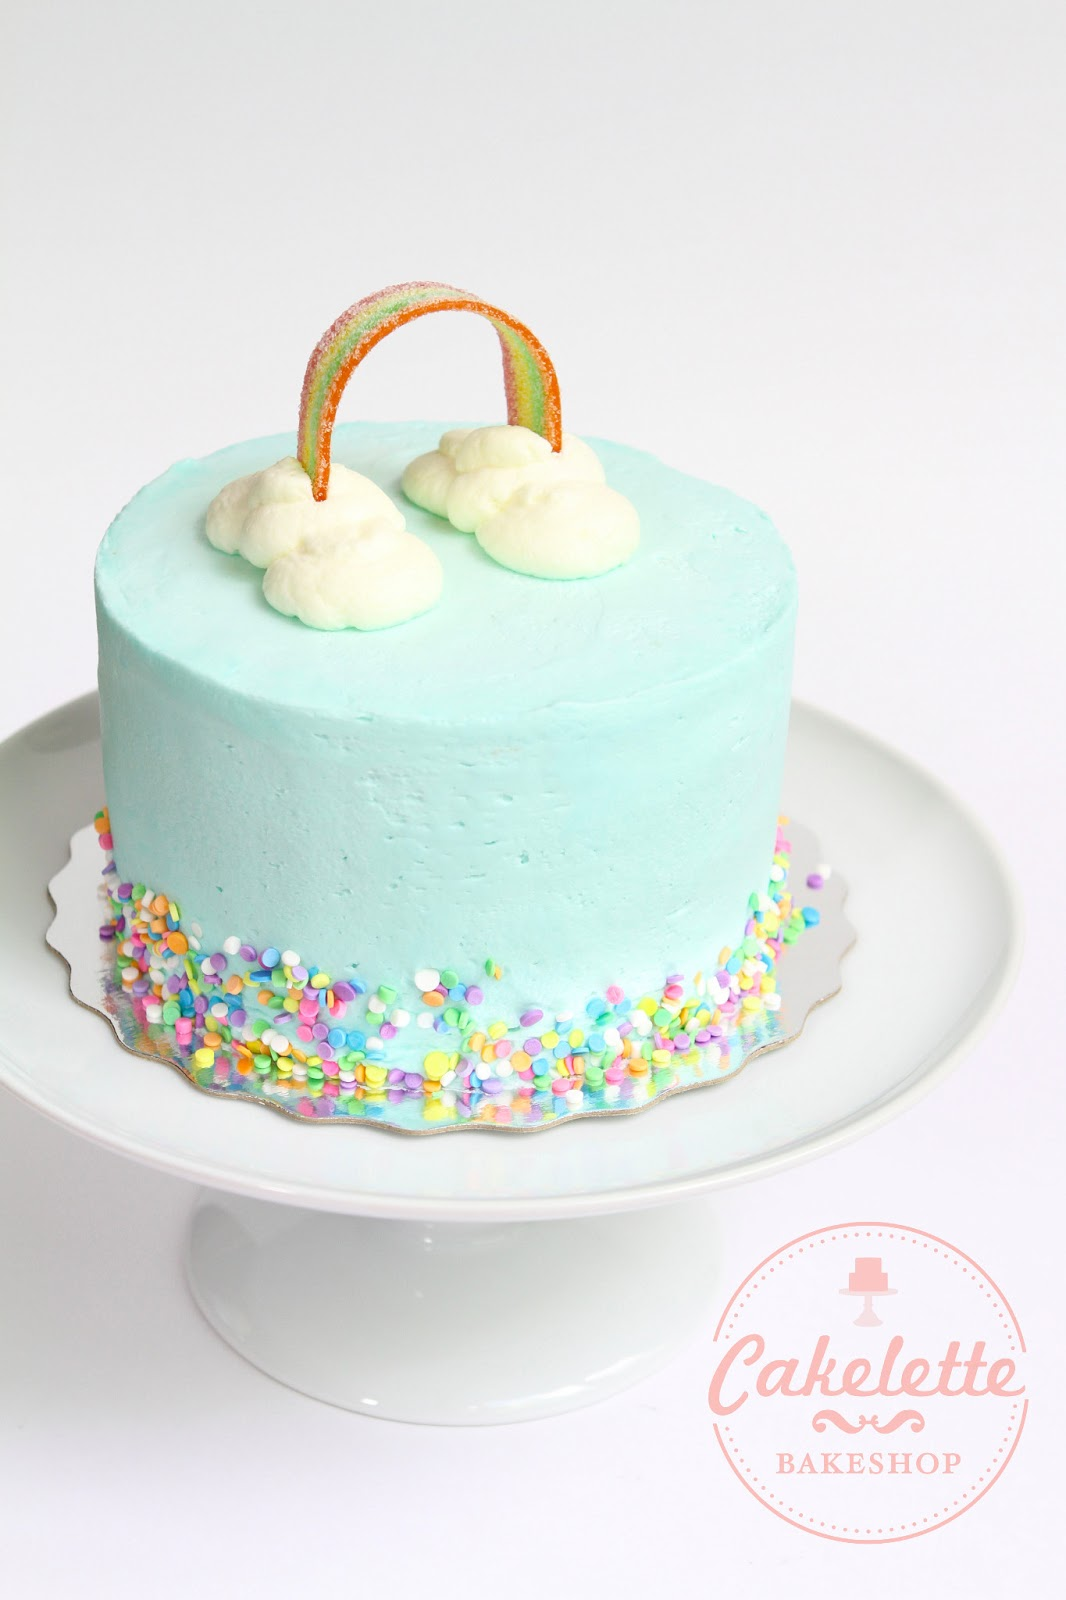 Cakelette Bakeshop A Rainbow And Cloud Cake